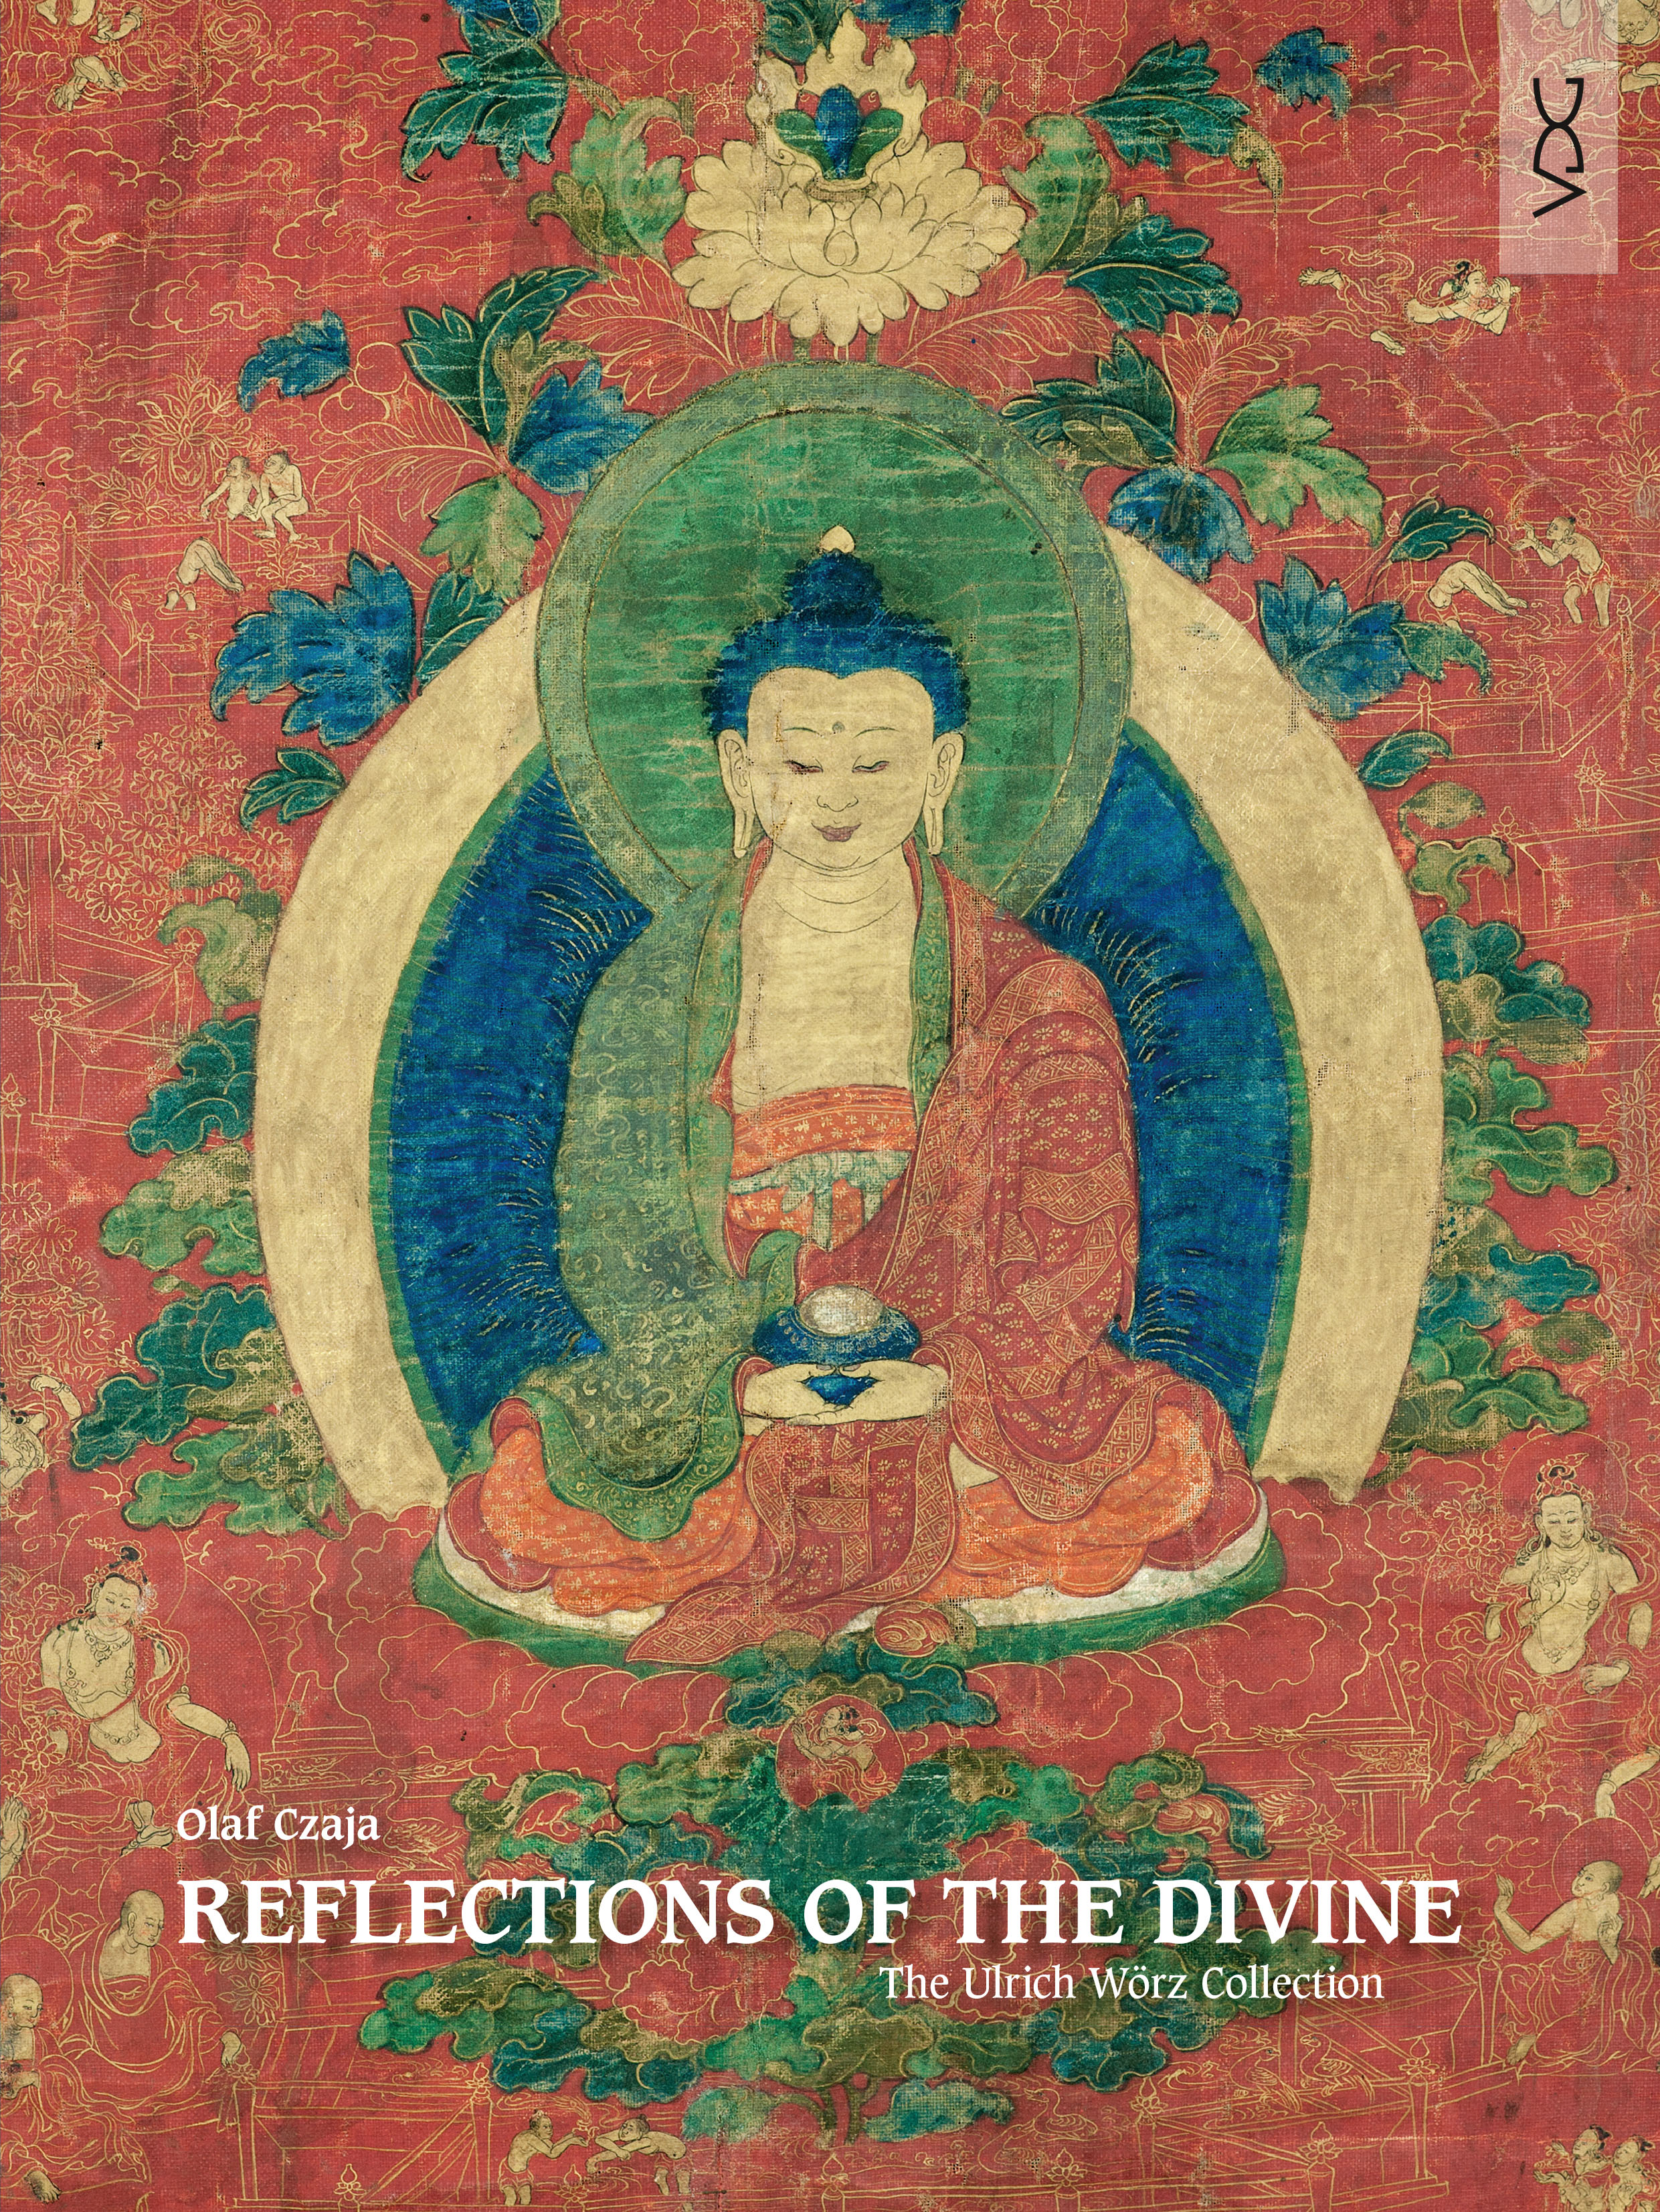 Reflections of the DIvine © Cover VDG